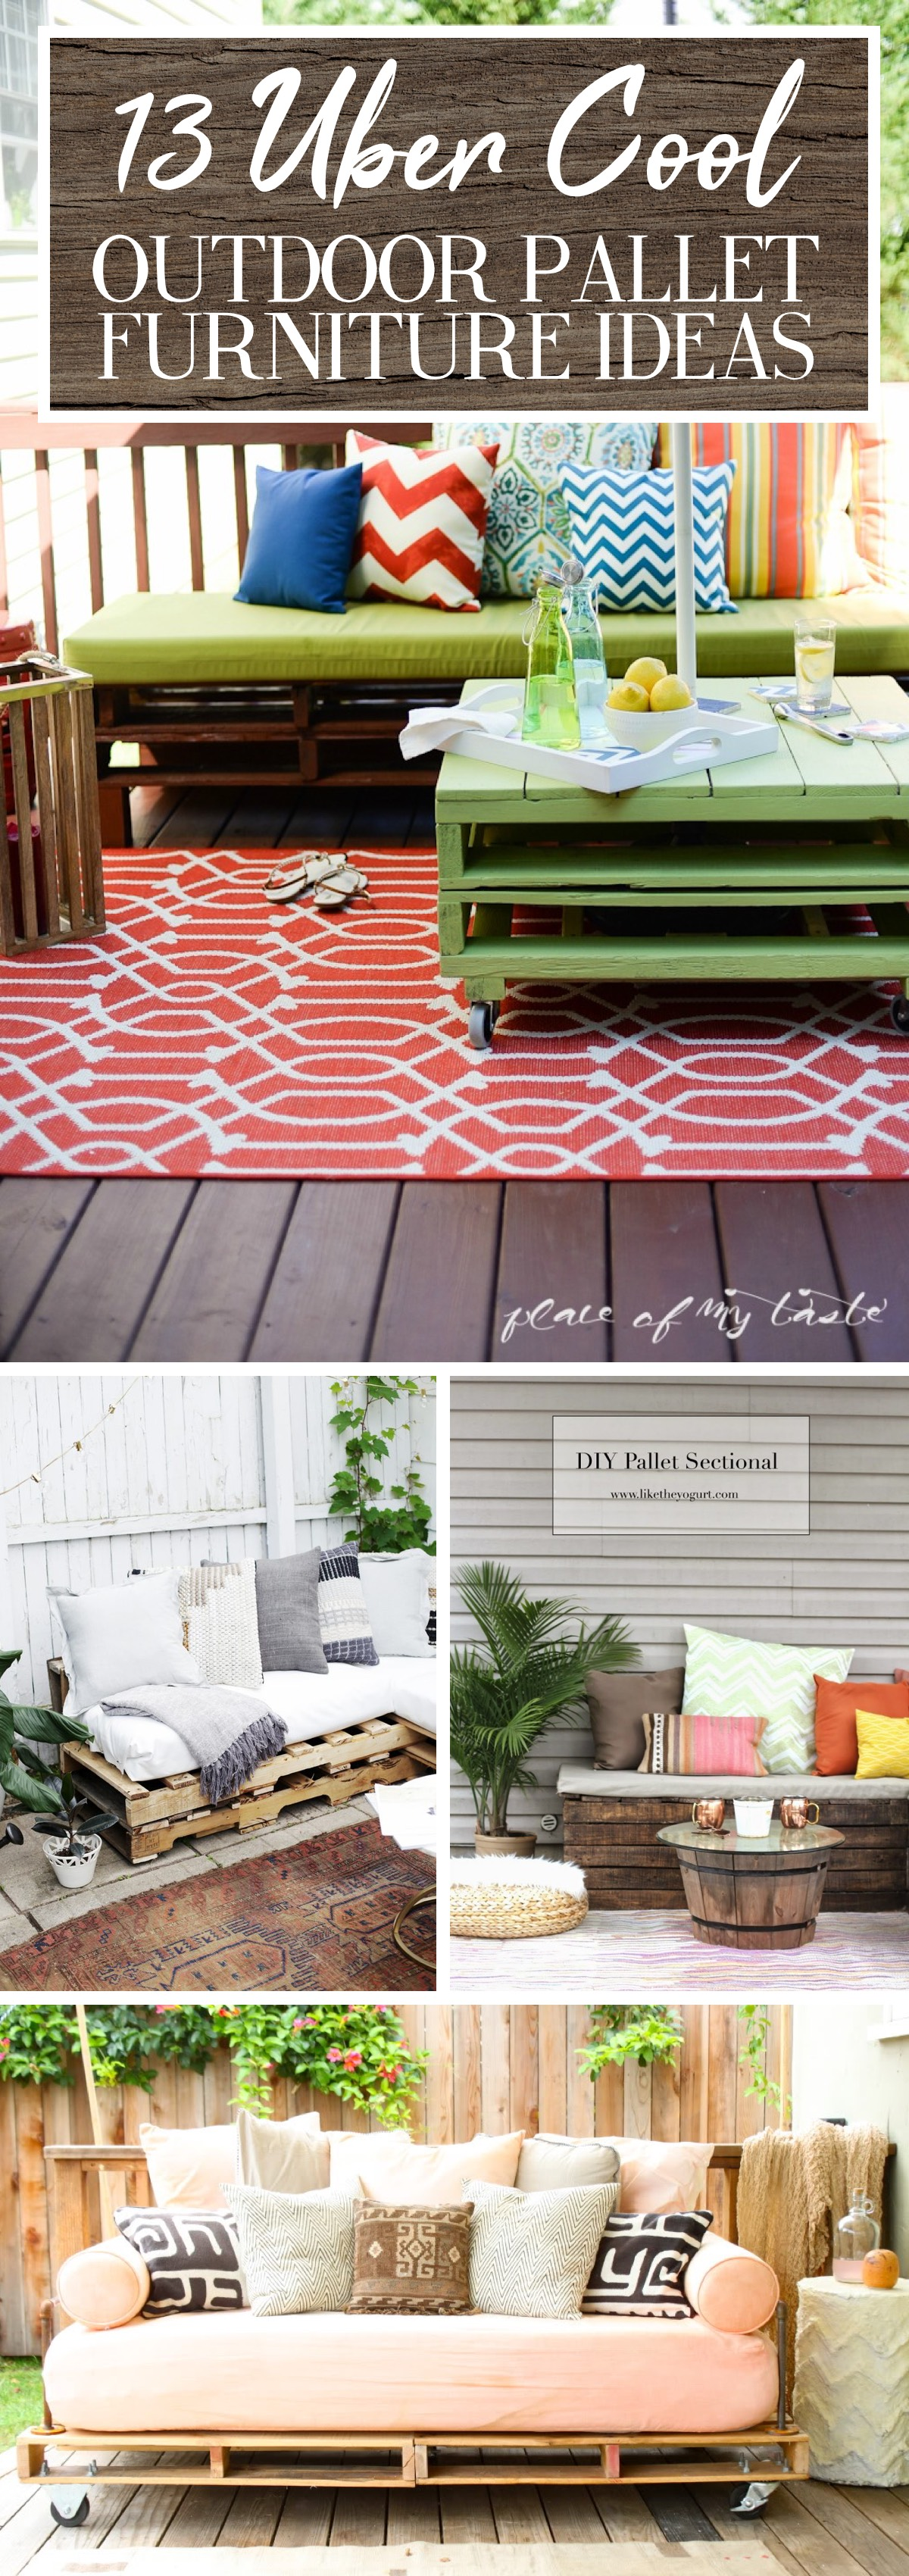 Uber Cool Outdoor Pallet Furniture Ideas